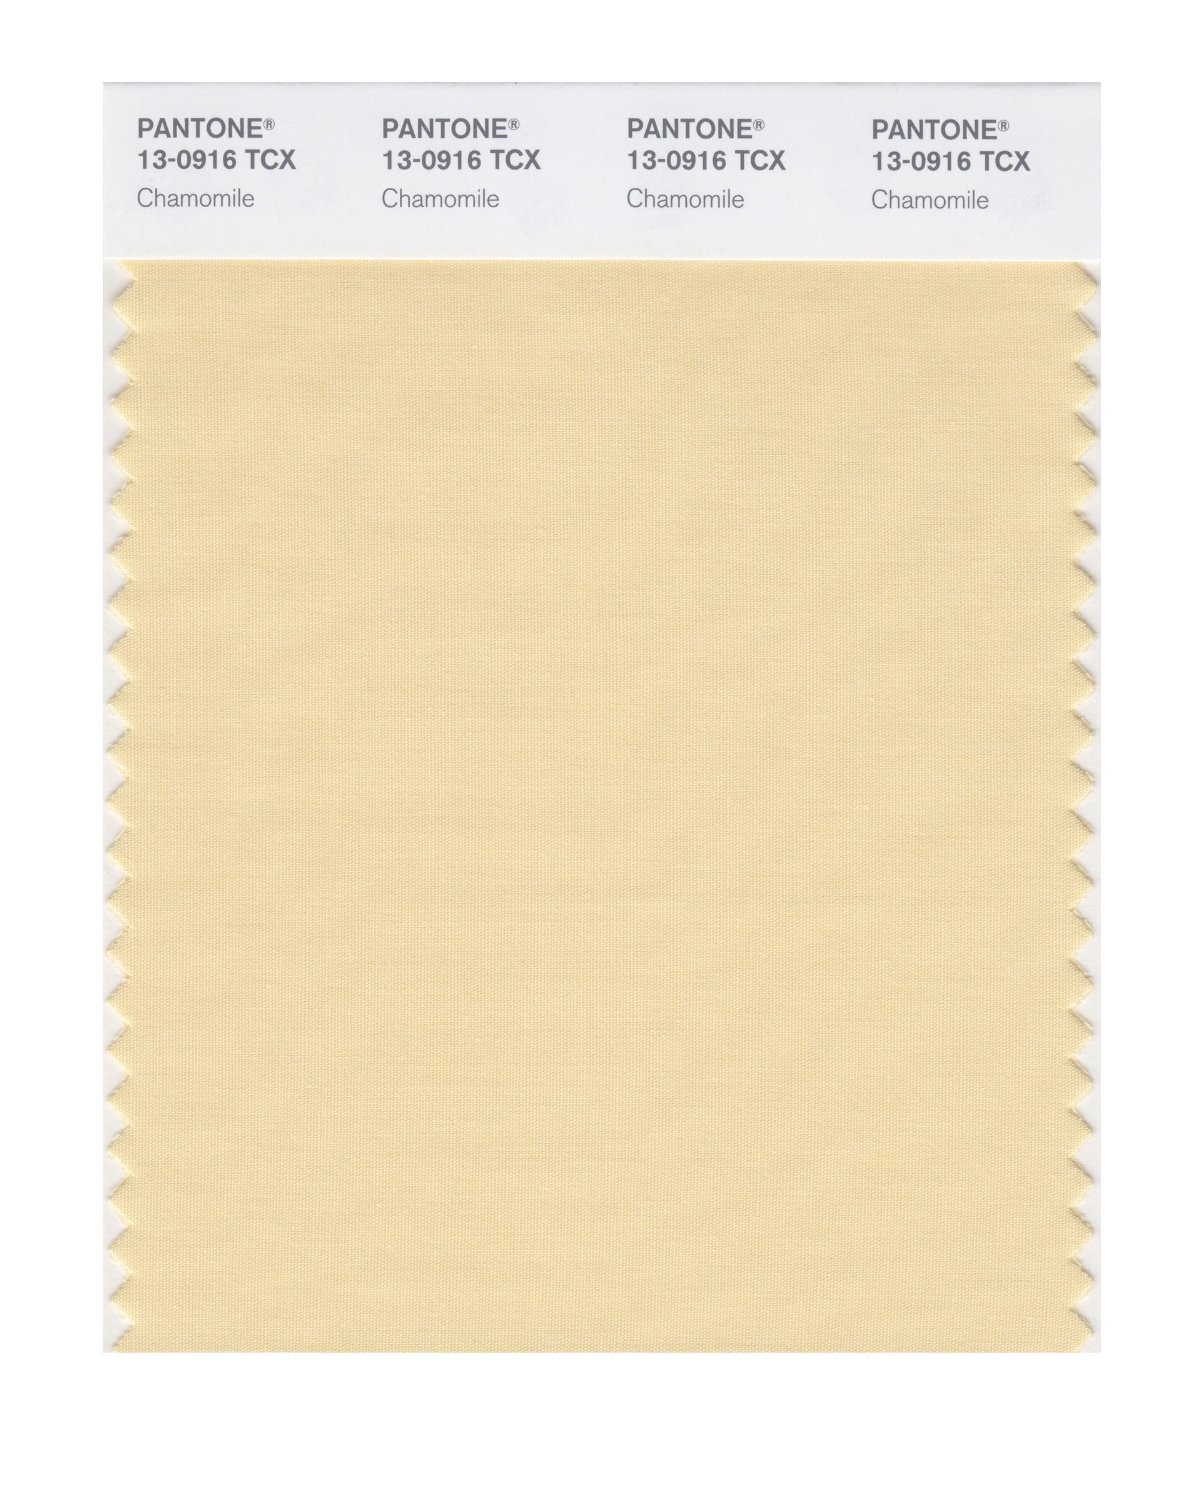 Pantone Smart Swatch 13-0916 Chamomille